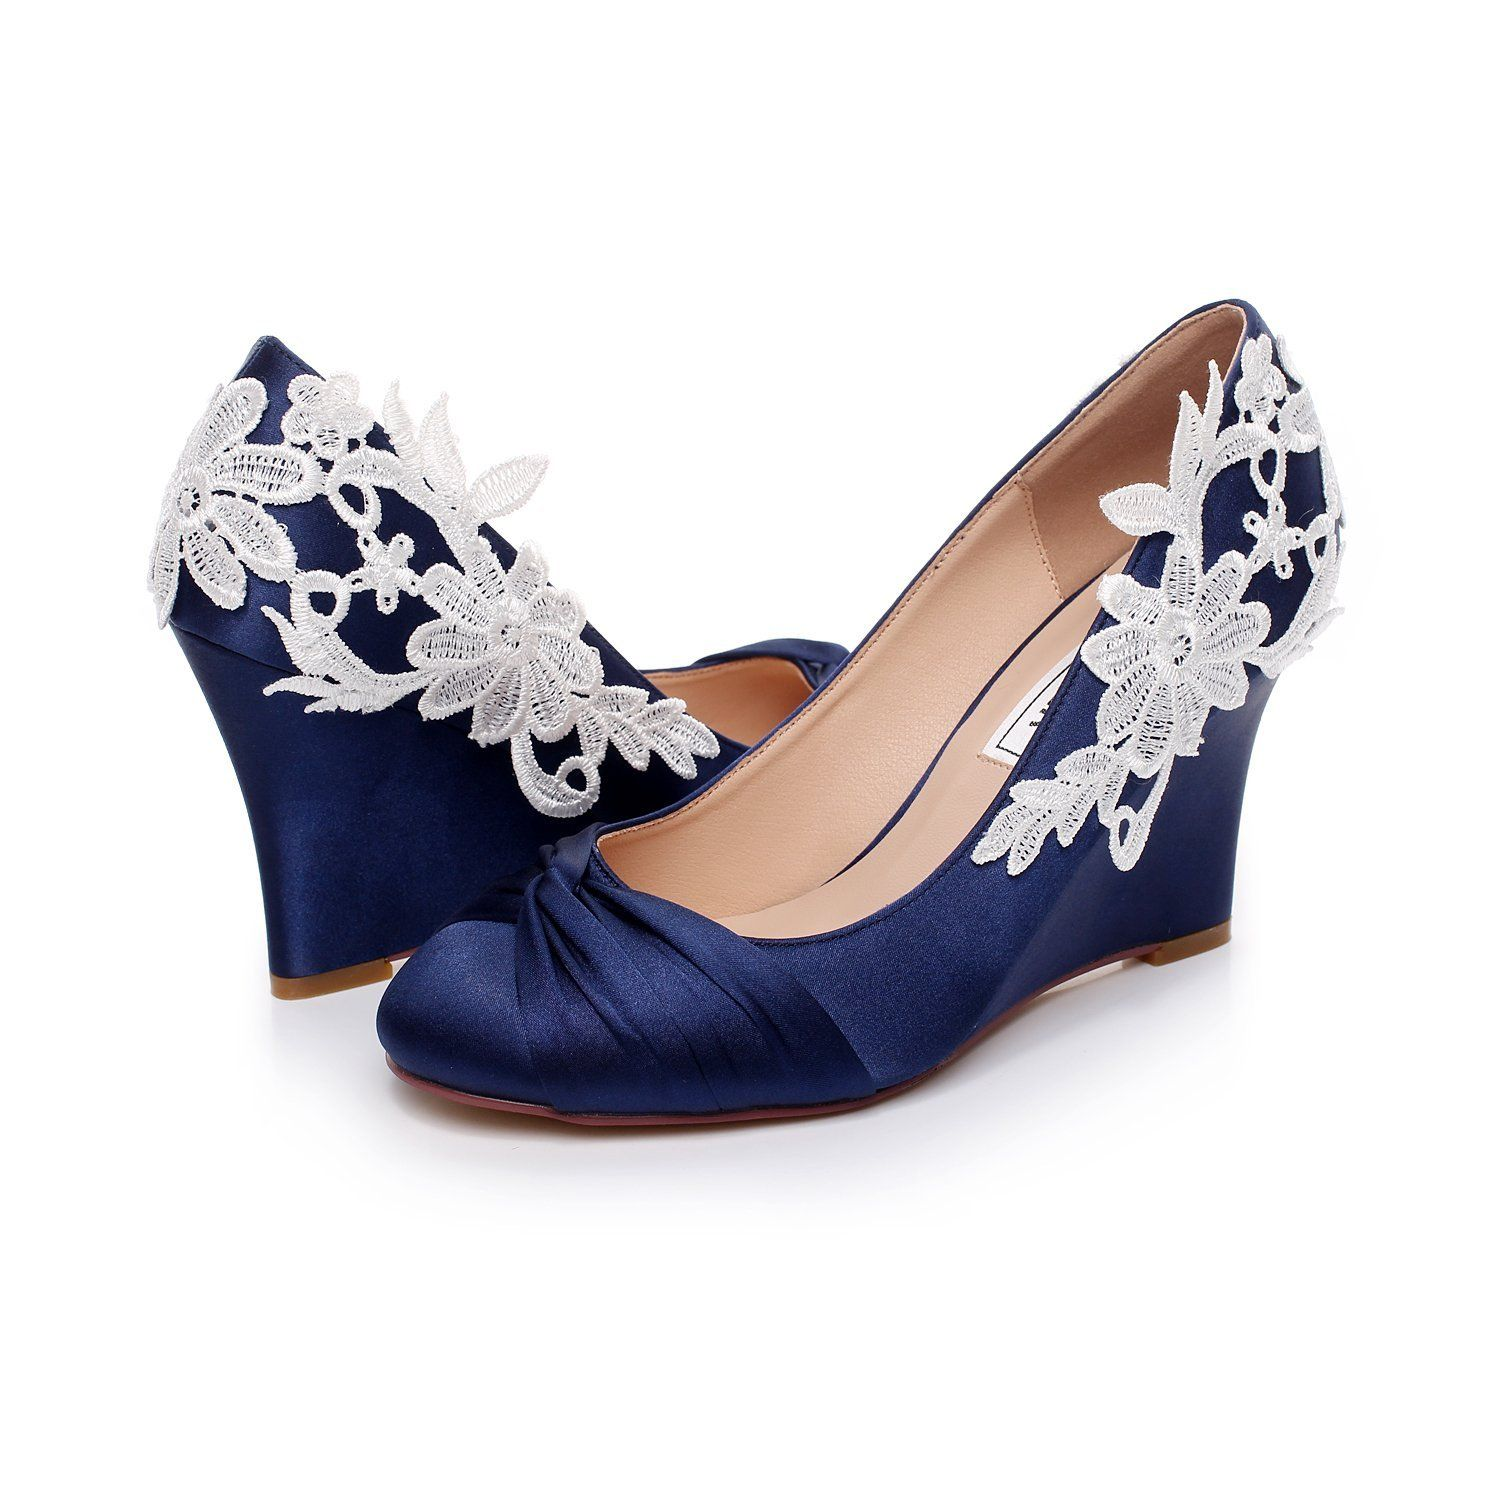 Luxveer Dark Blue Wedding Shoes Wedges With White Lace Flowers